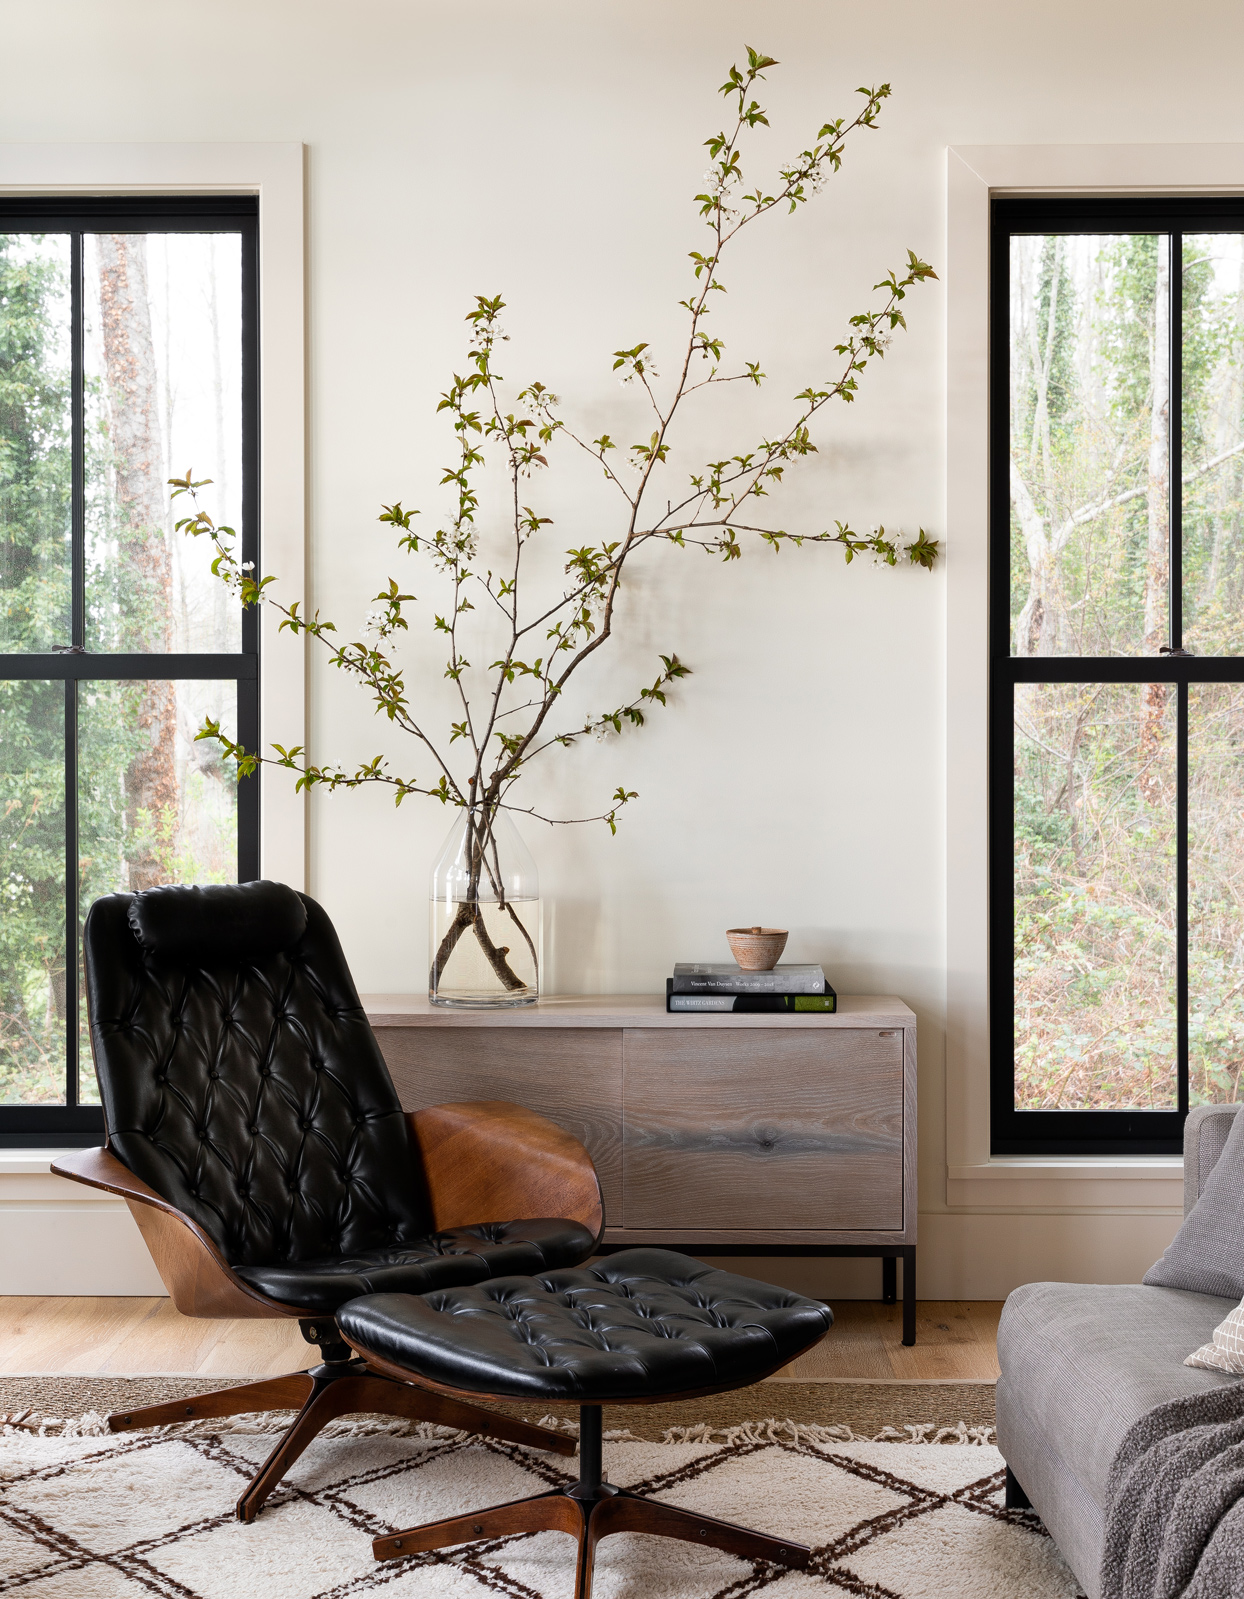 living room with black leather chair and tall floral branches